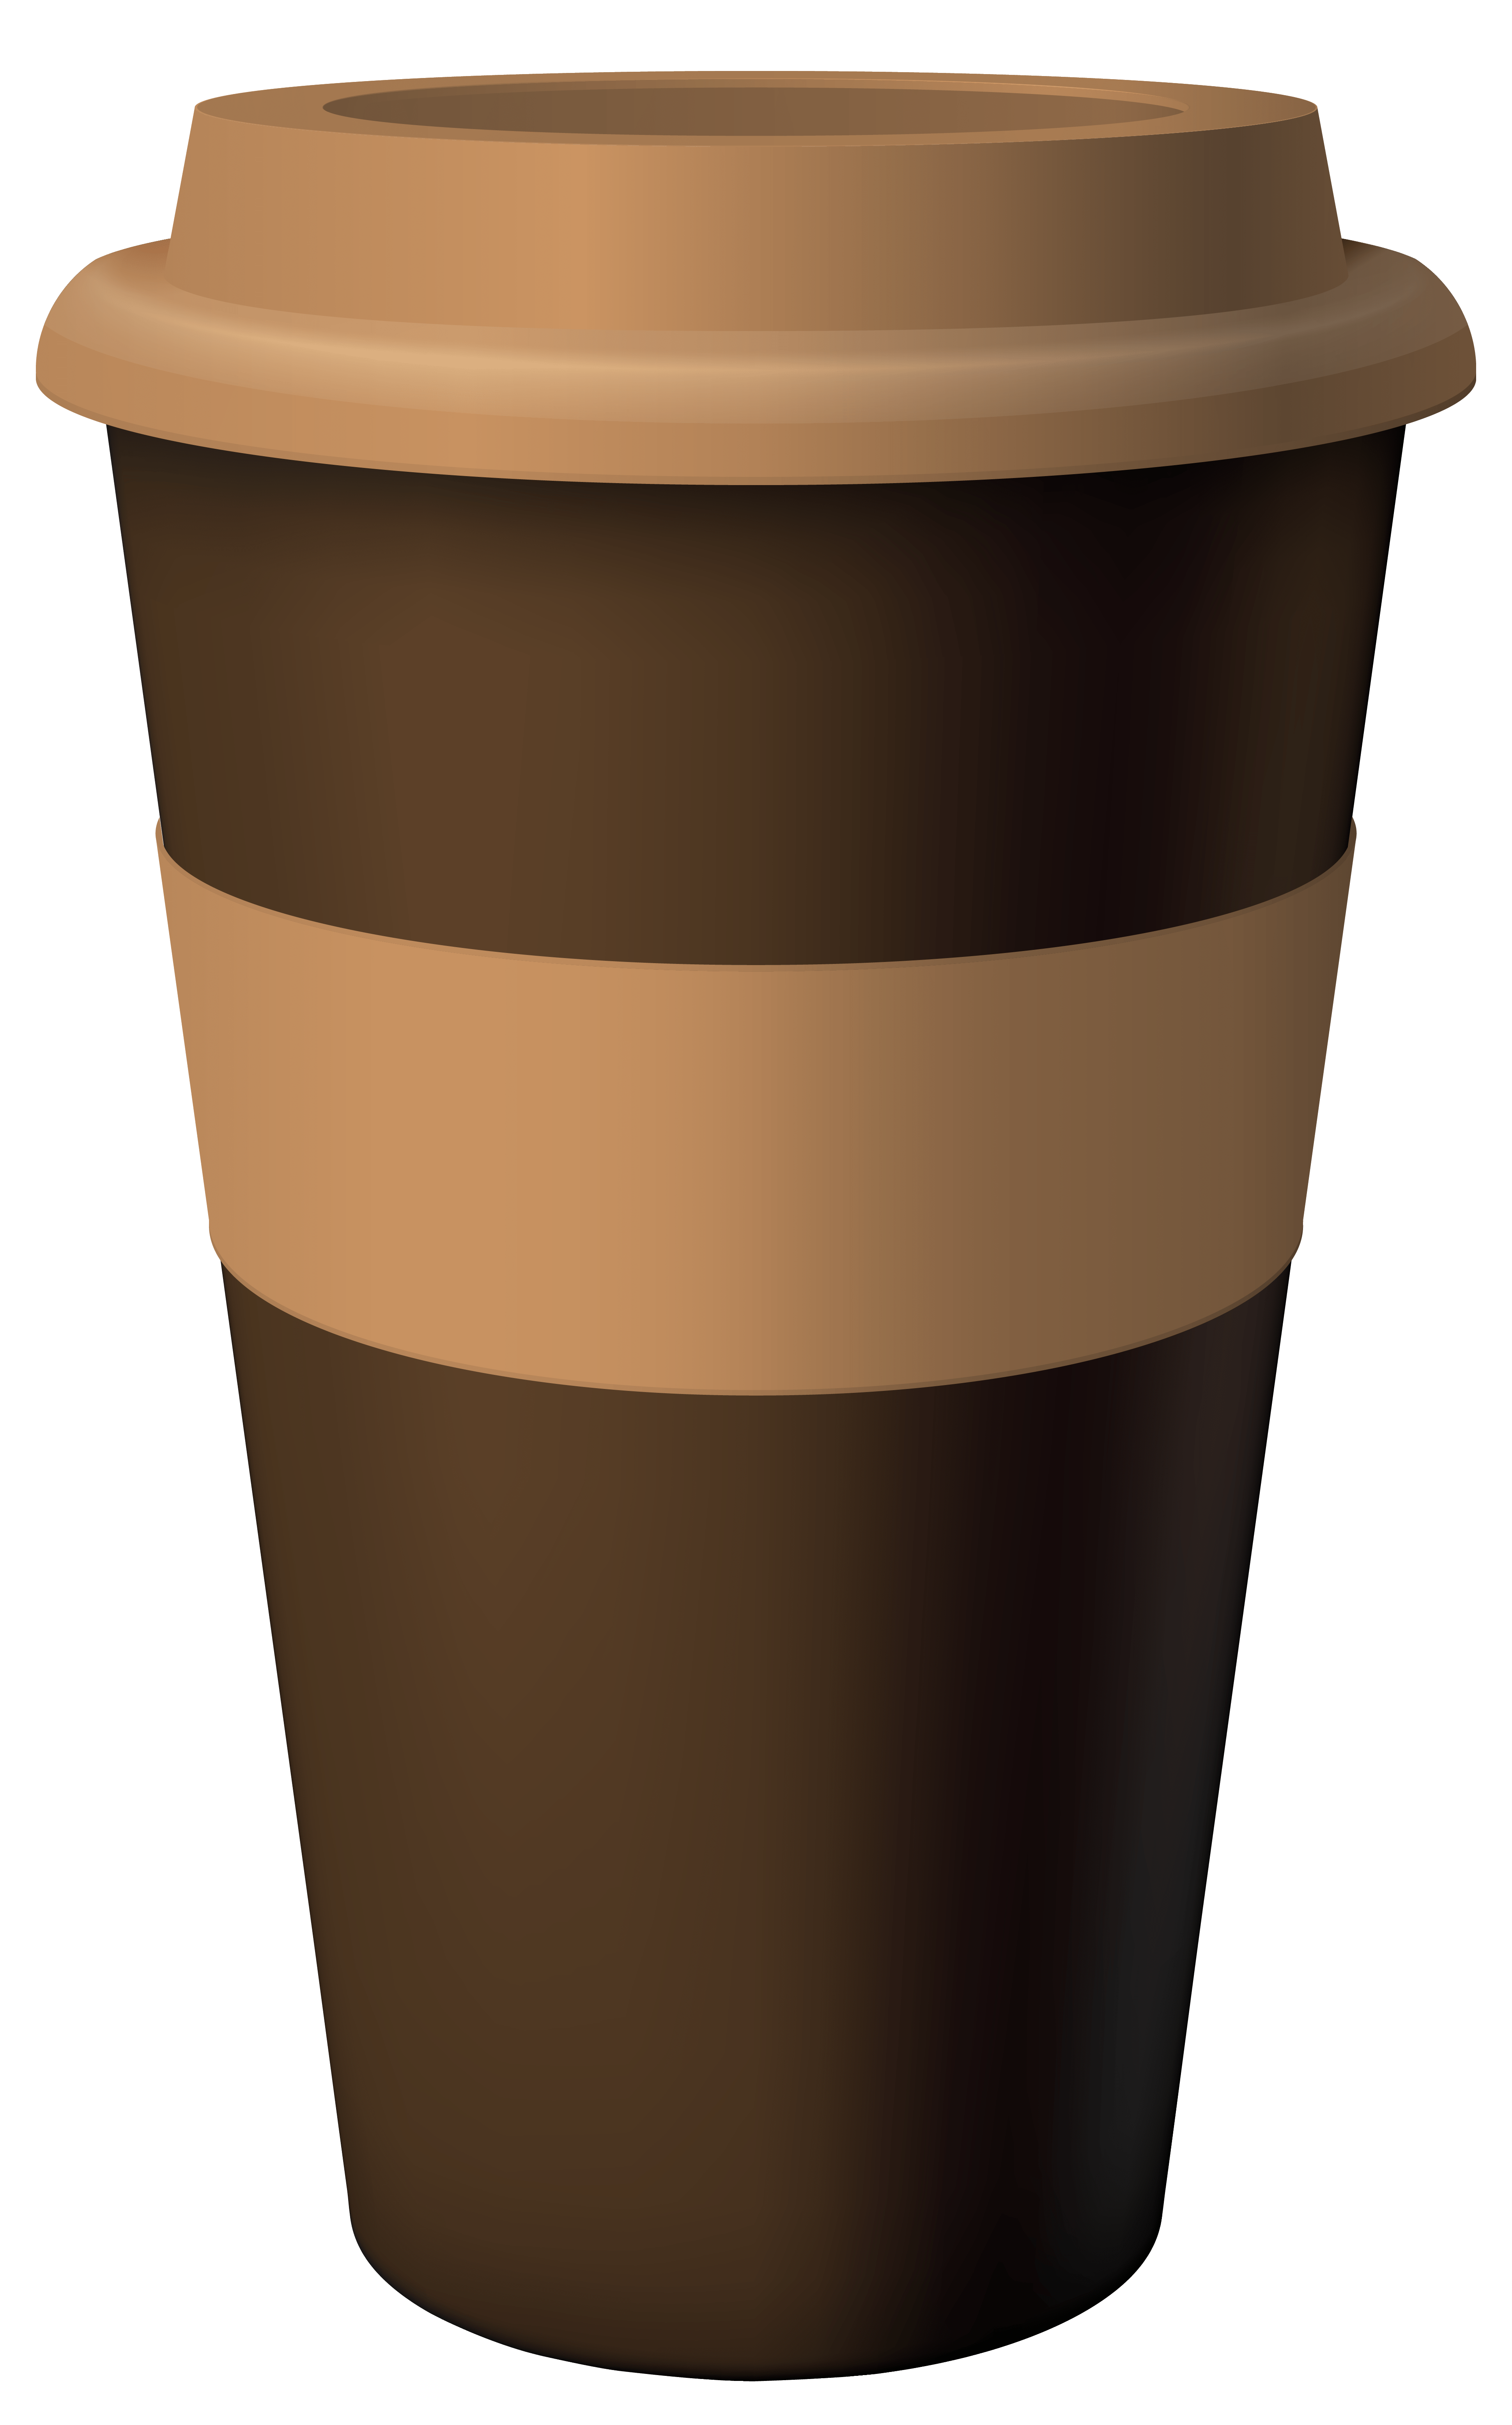 Cute Coffee Mug Wallpaper Brown Hot Coffee Cup Png Clipart Image Gallery